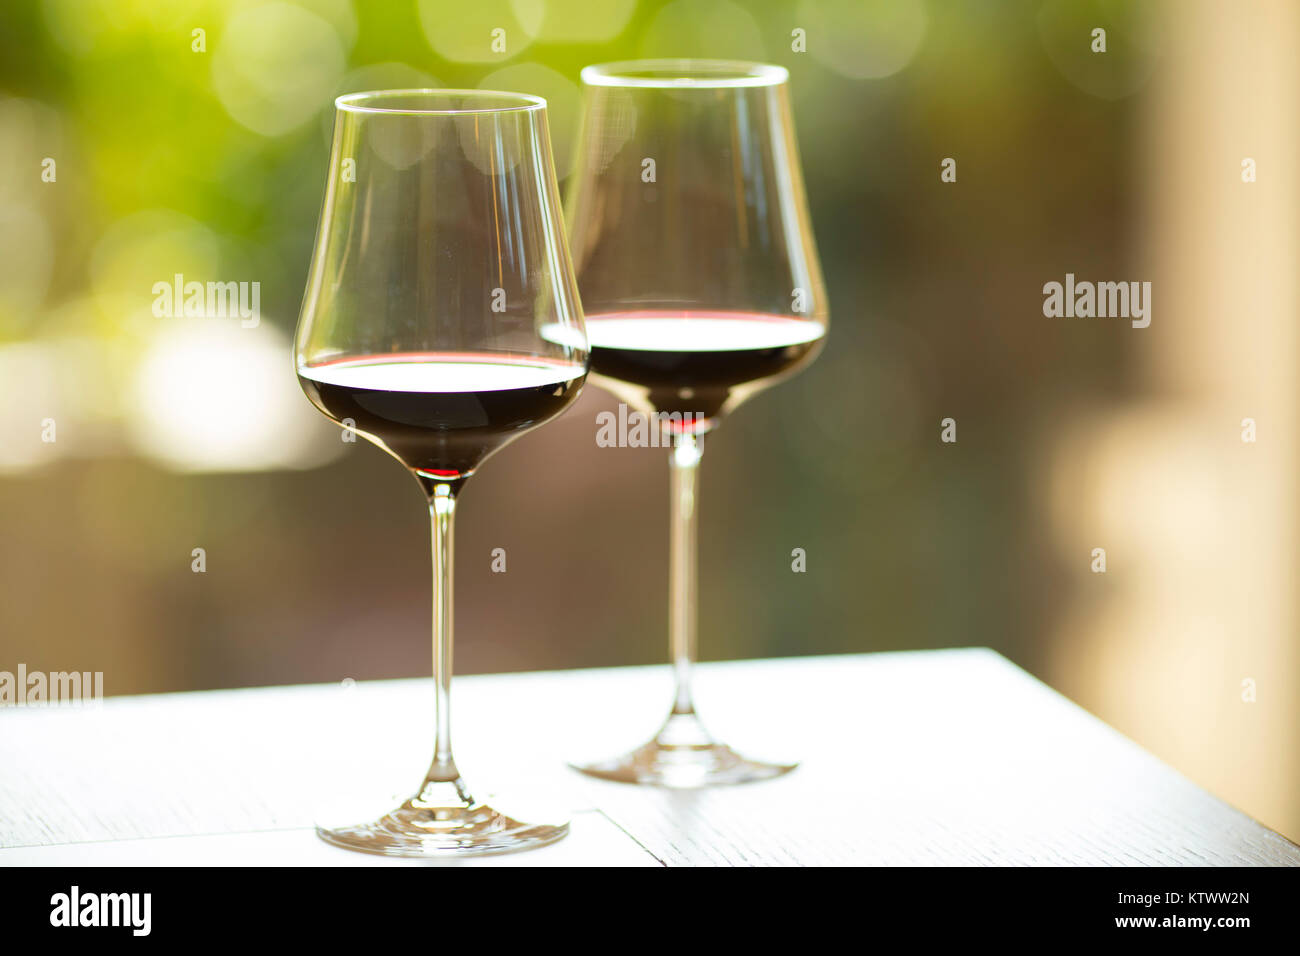 Closeup of two red wine glasses with a colorful, sunny atmosphere. Summer ambience, low depth of field - Stock Image